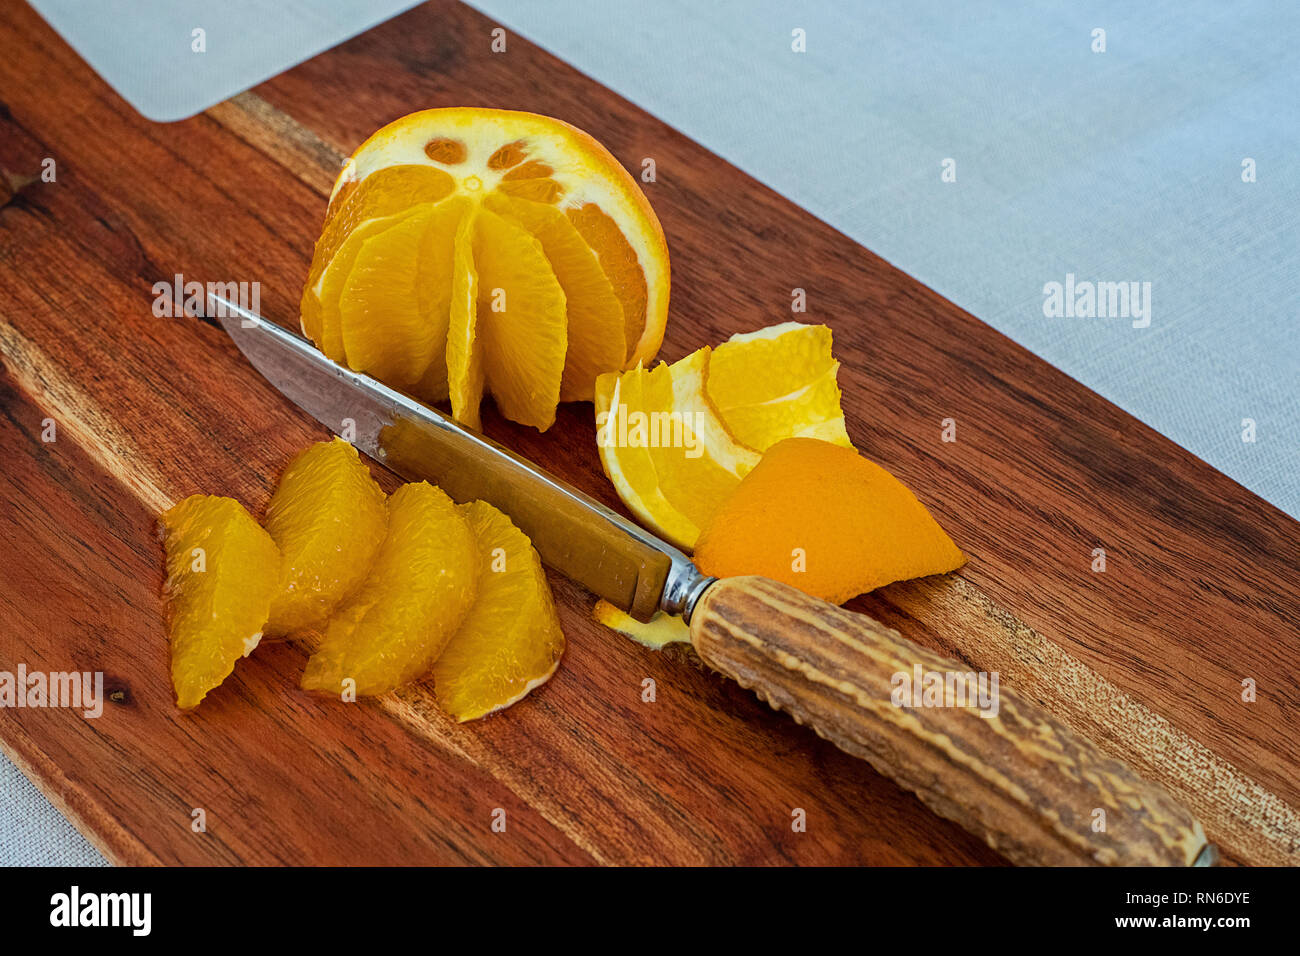 Peel the oranges and fillet them. - Stock Image